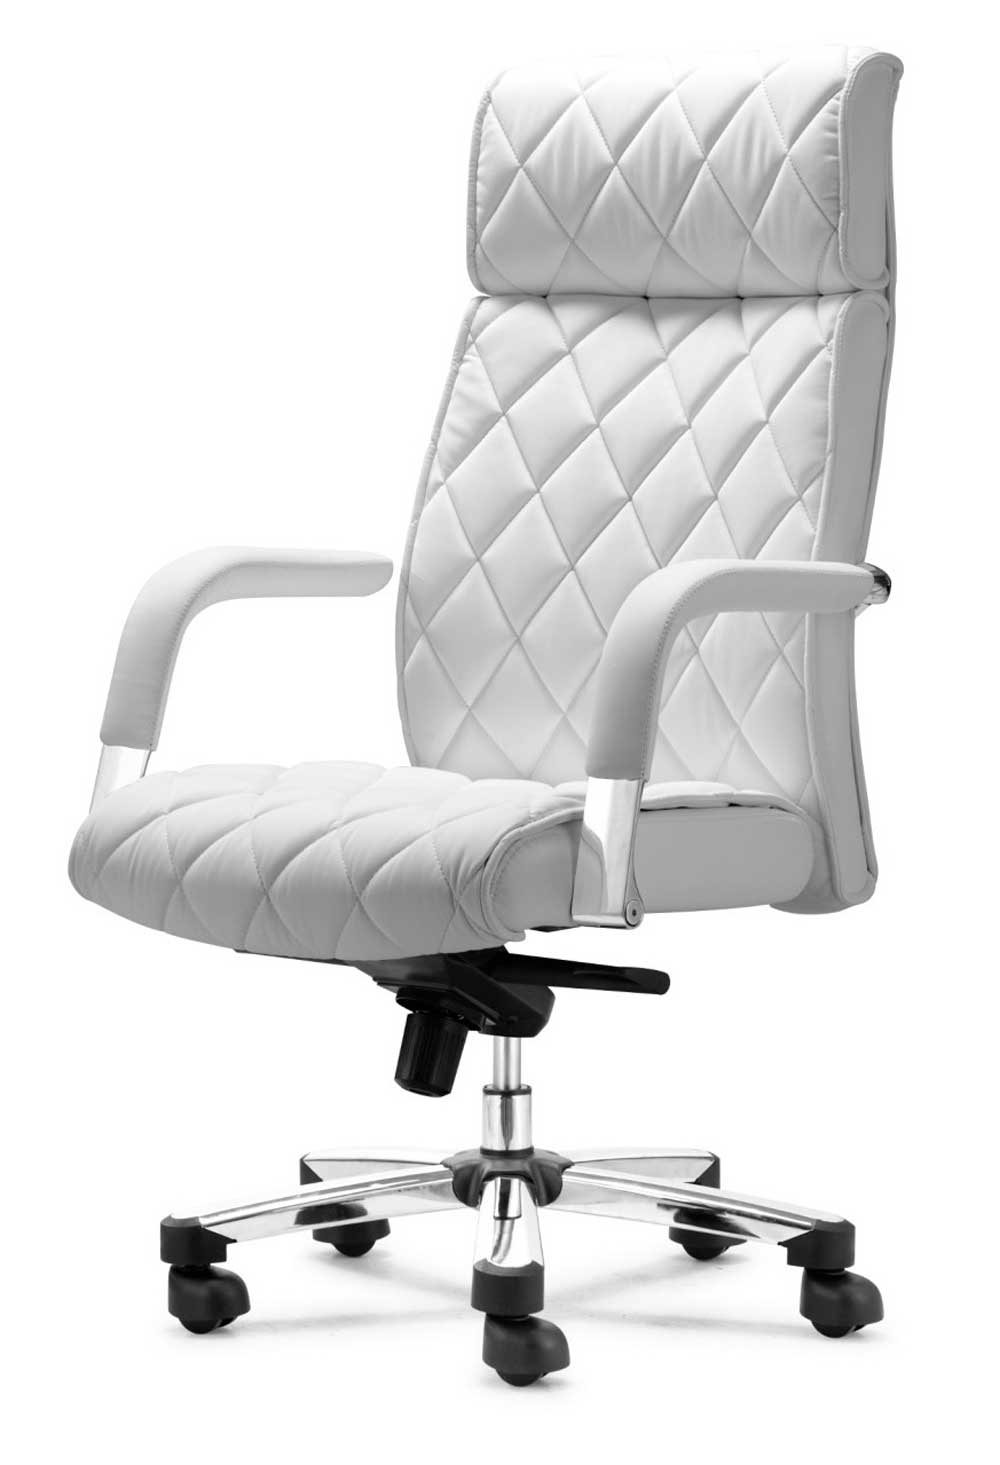 Best And Newest Chairs : Home Office Furniture Office Chairs Online Ergonomic Desk Pertaining To Ergonomic Executive Office Chairs (View 14 of 20)